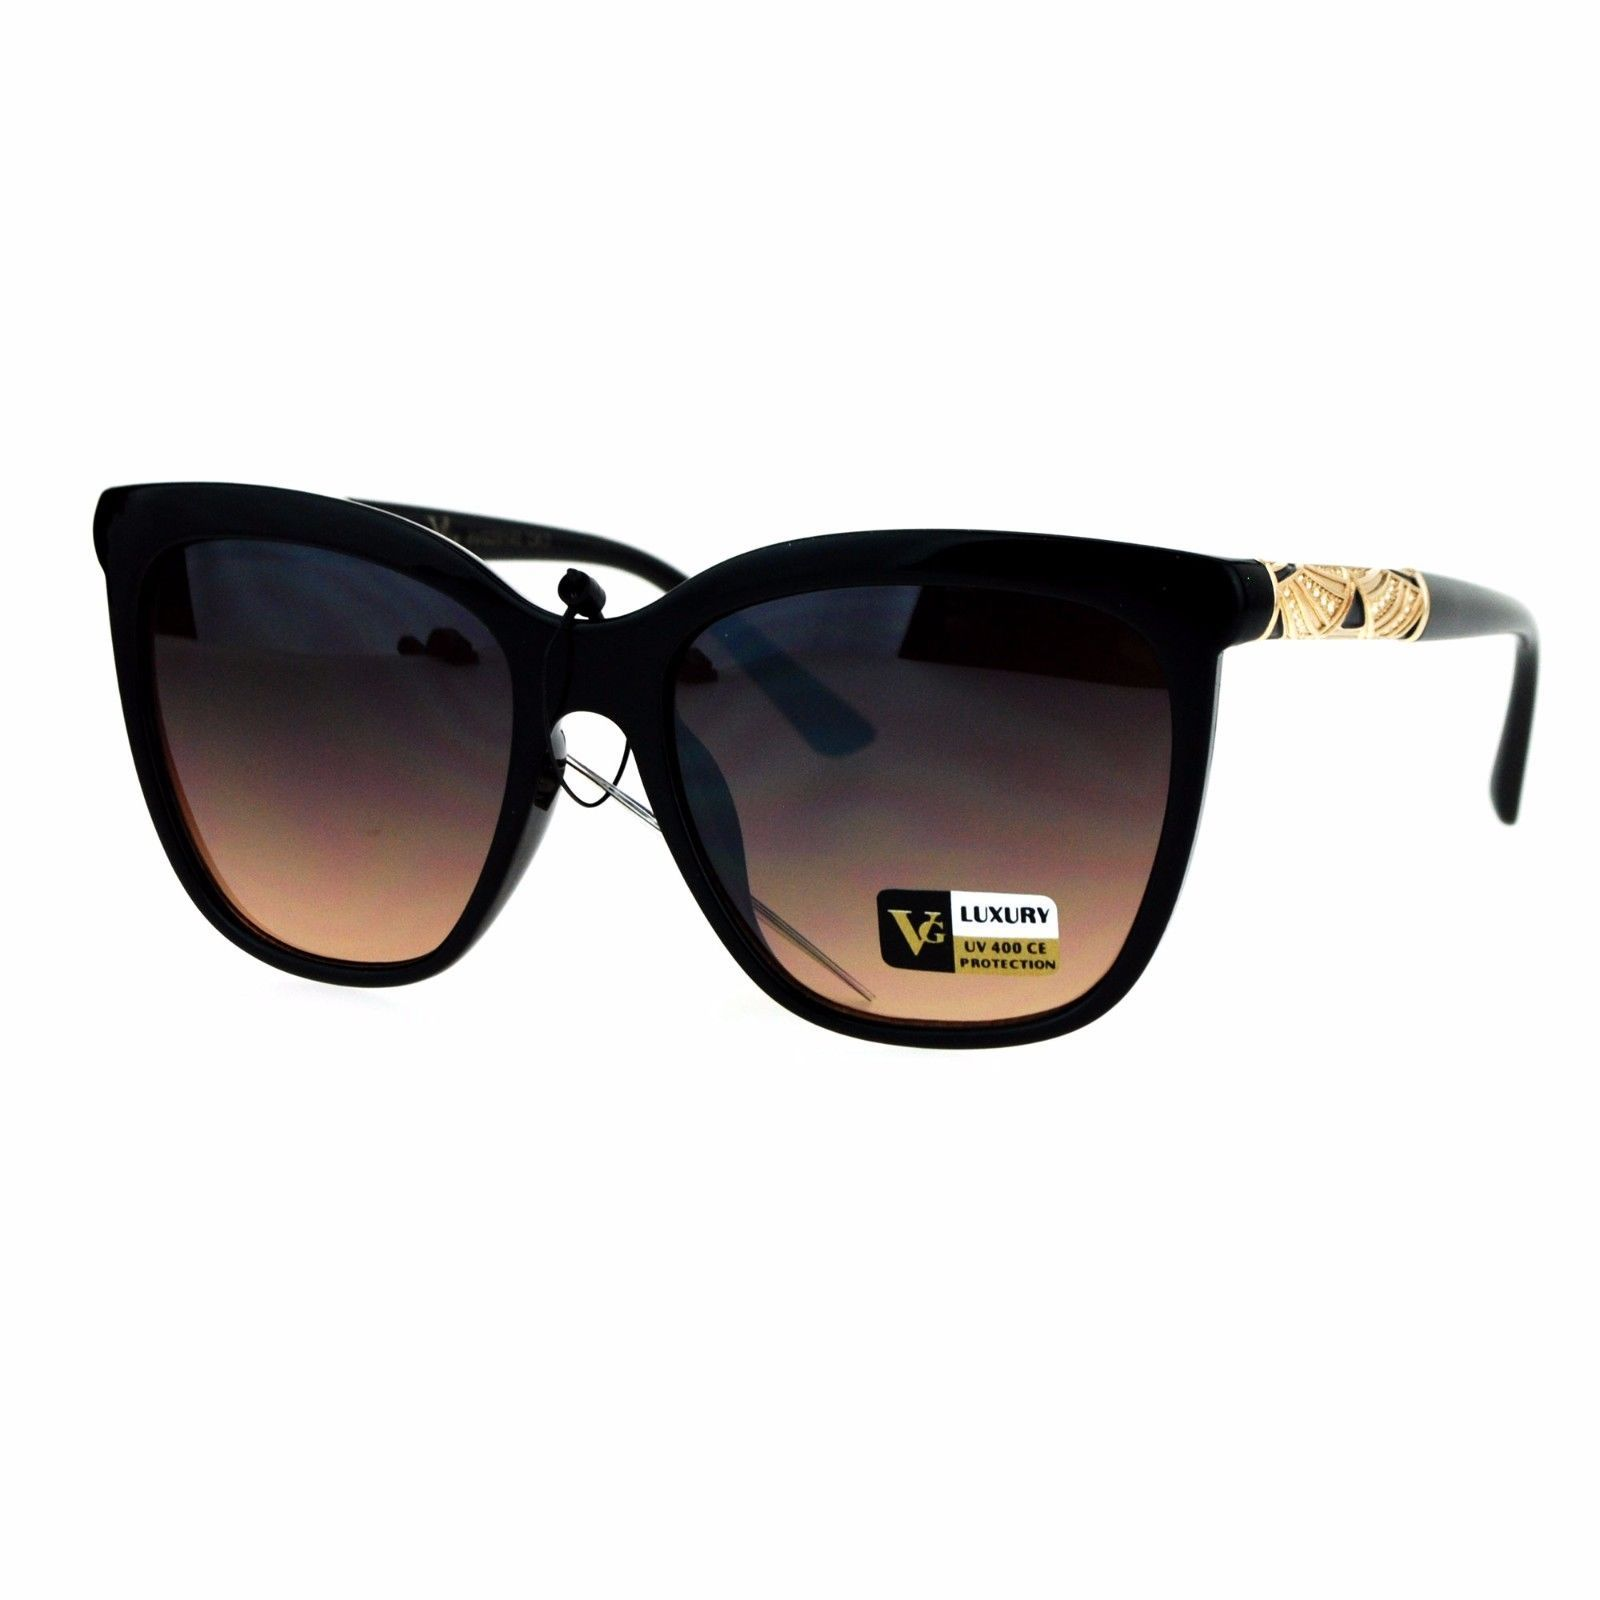 Womens Luxury Fashion Sunglasses Stylish Square Frame UV 400